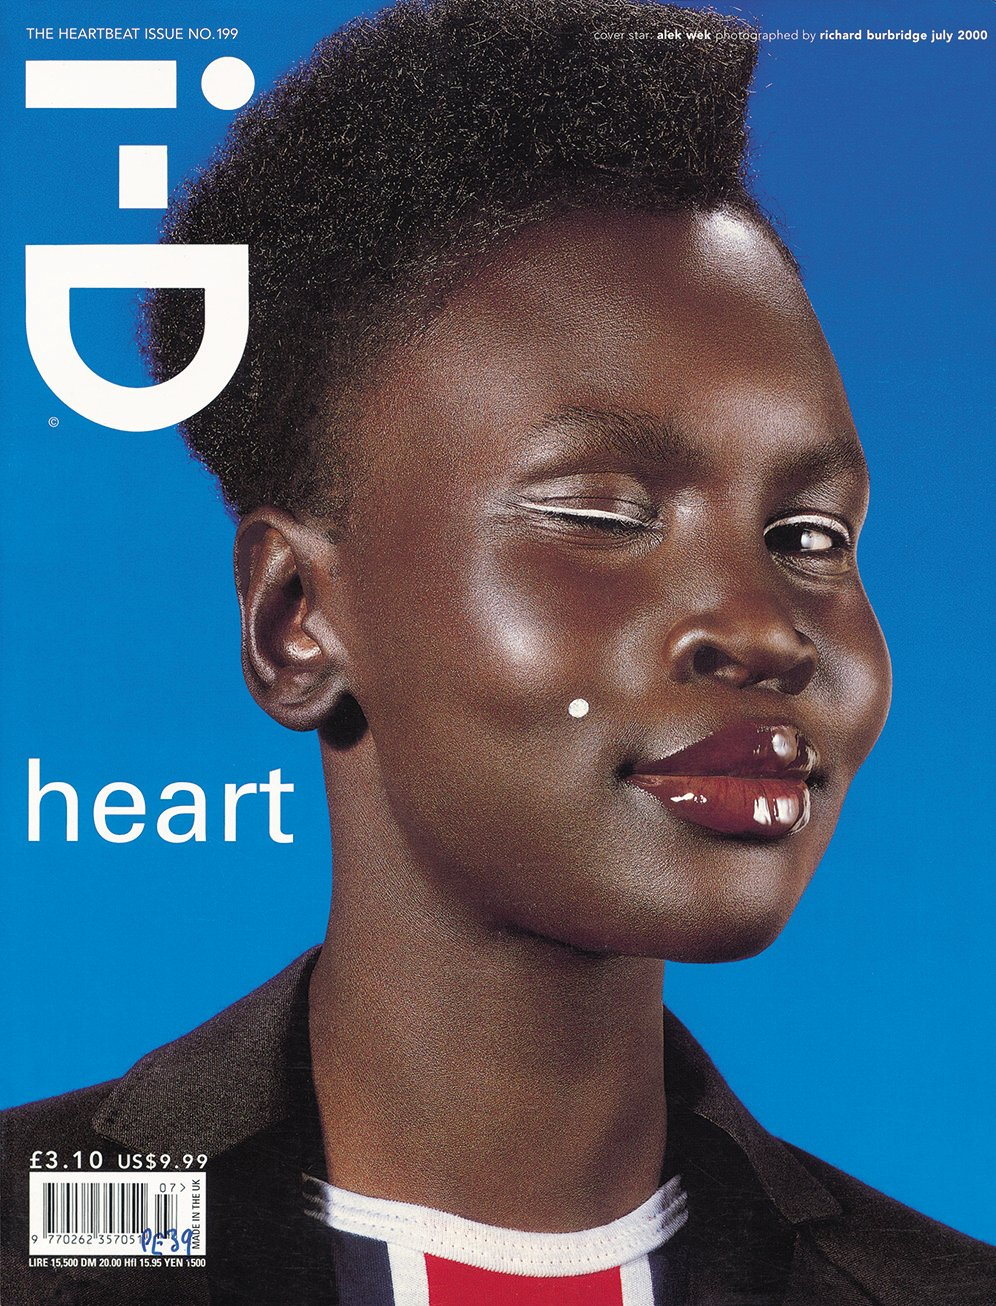 199. THE HEARTBEAT ISSUE